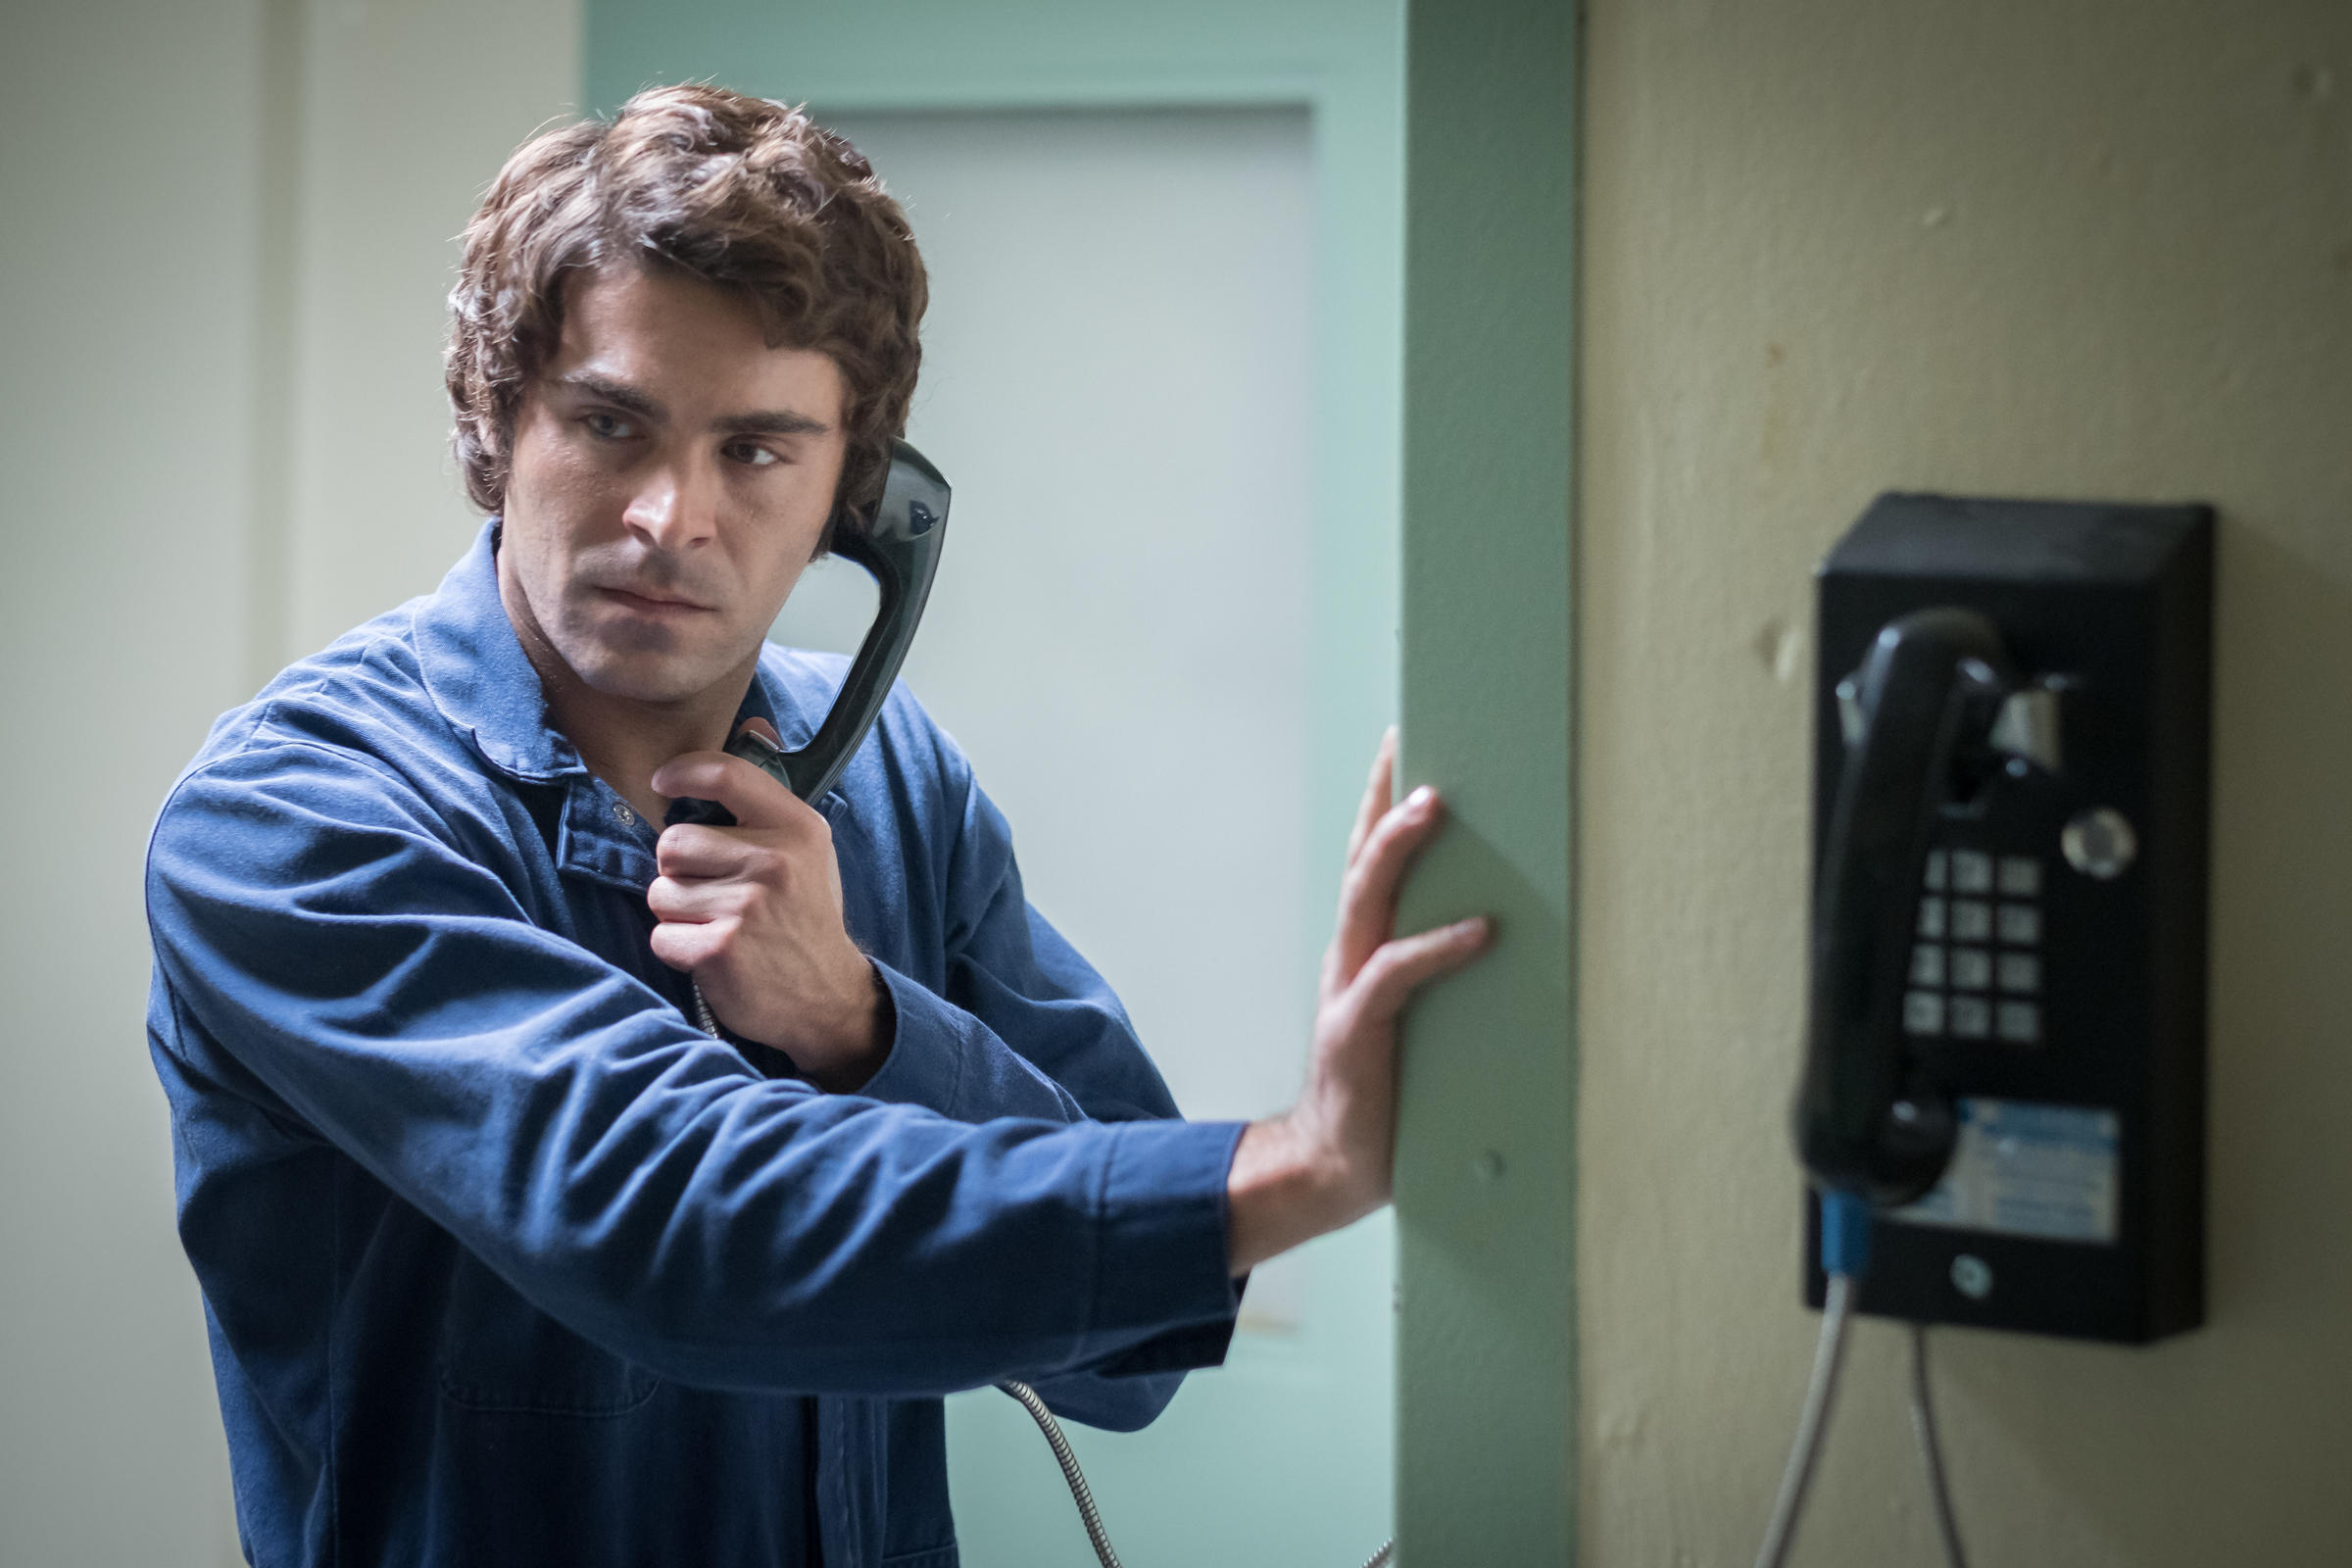 Netflix Film Prods At Ted Bundy's 'Extremely Wicked, Shockingly Evil